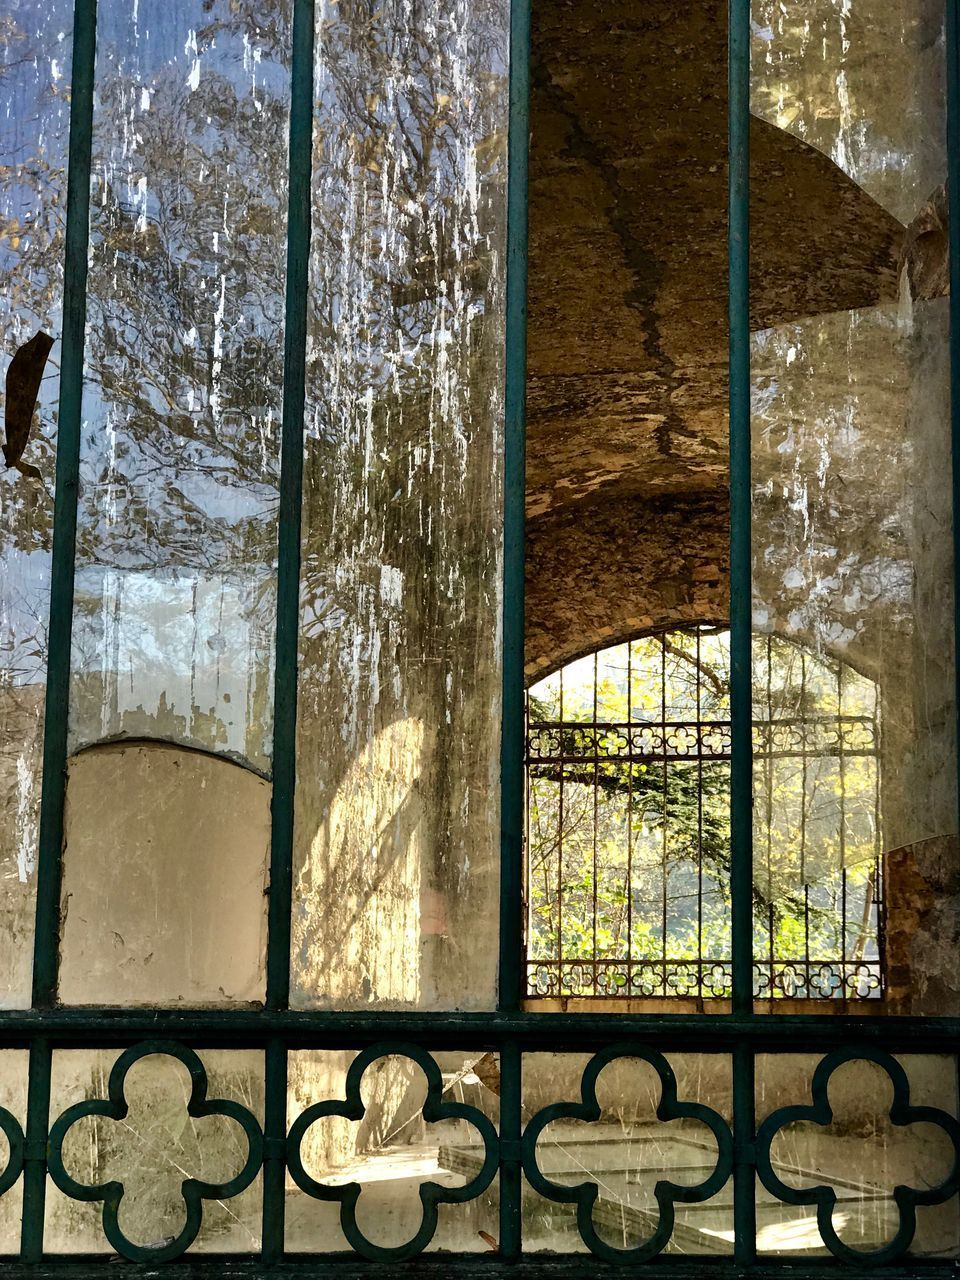 window, glass - material, indoors, no people, architecture, transparent, day, building, built structure, sunlight, nature, history, metal, the past, grate, pattern, tree, grid, railing, glass, wrought iron